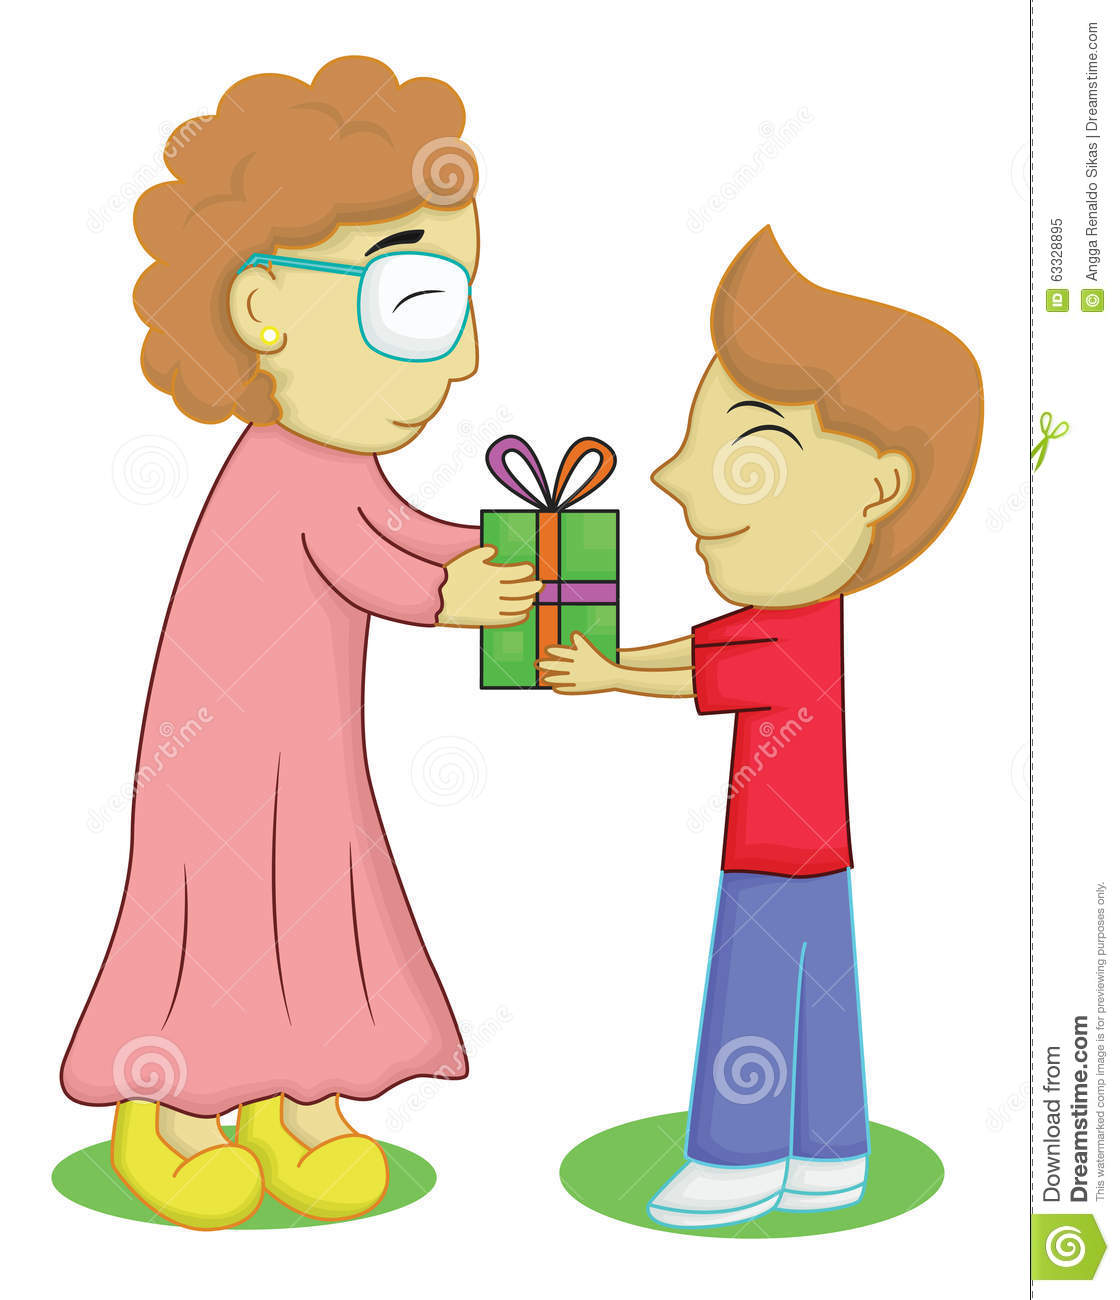 Giving gift clipart 4 » Clipart Station.